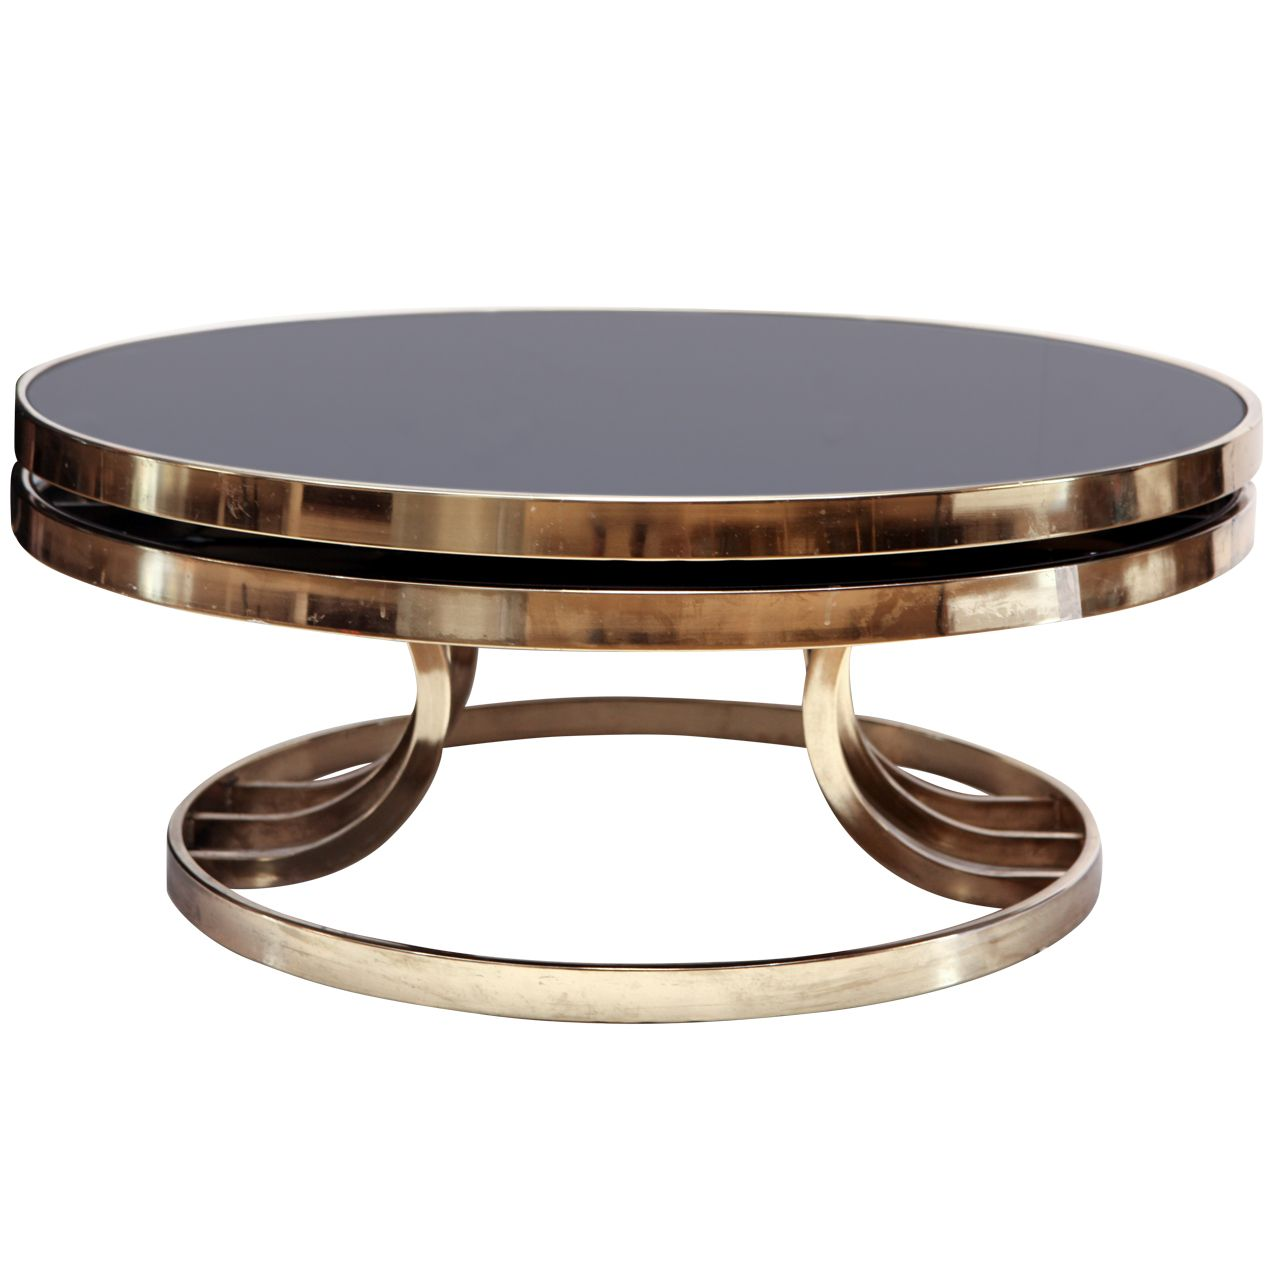 Colorful Modern Coffee Table: Italian Brass And Glass Swivel Coffee Table